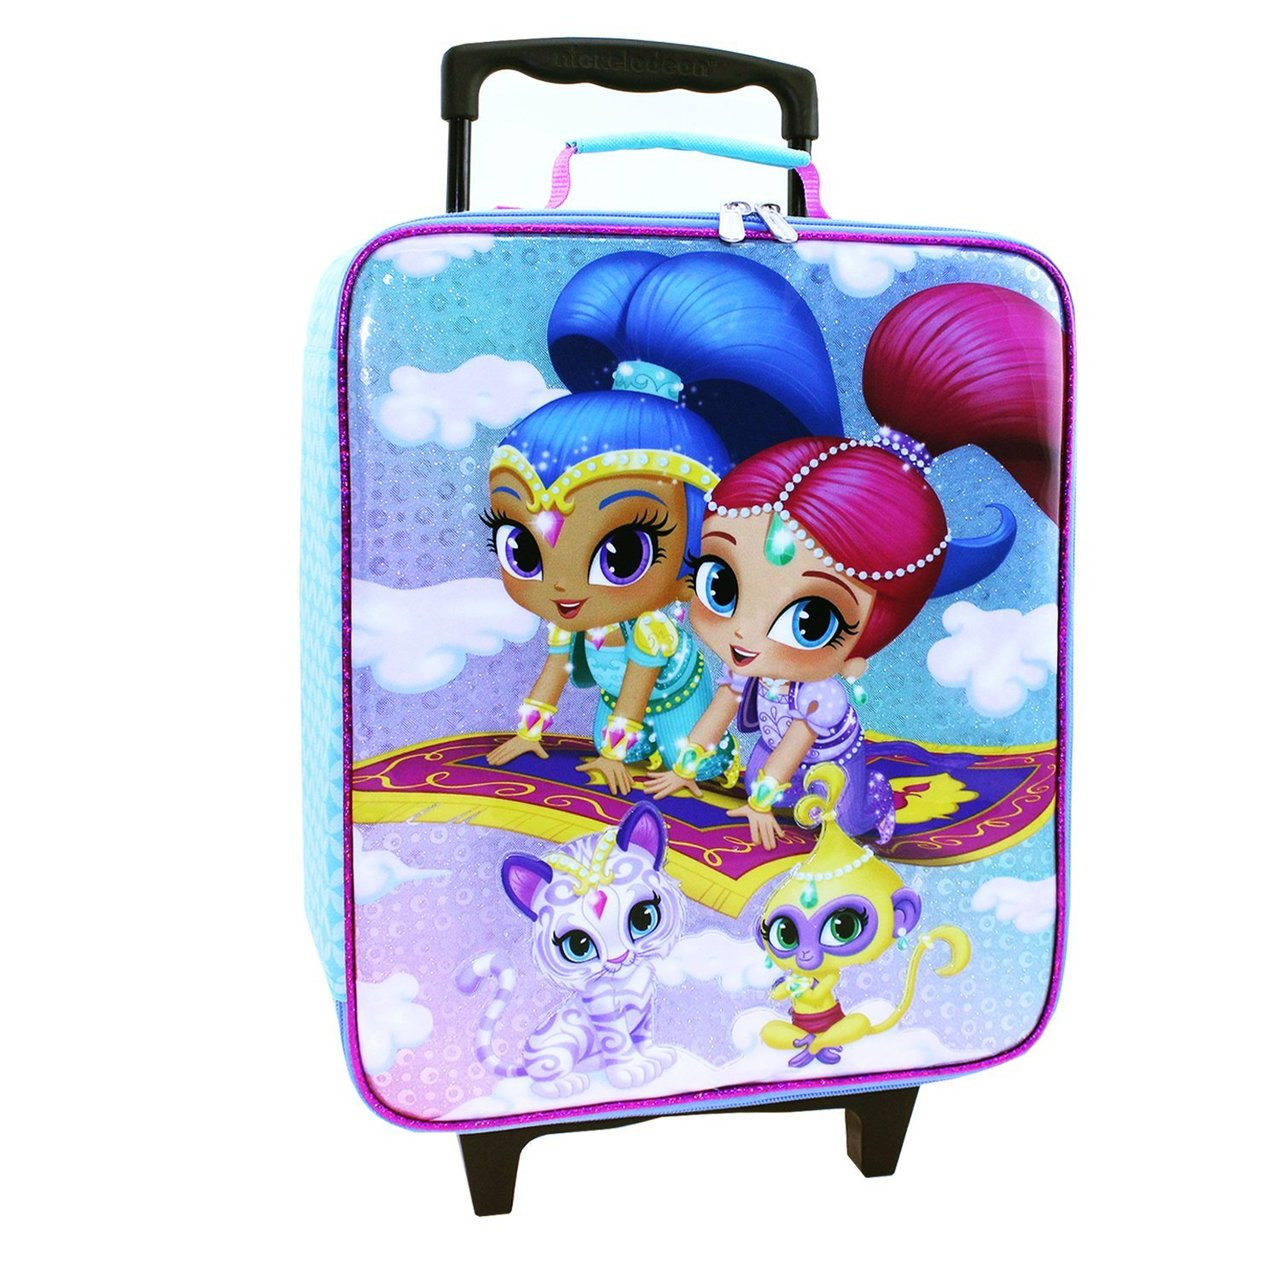 90823ce2f823 Nickelodeon Shimmer and Shine Pilot Case